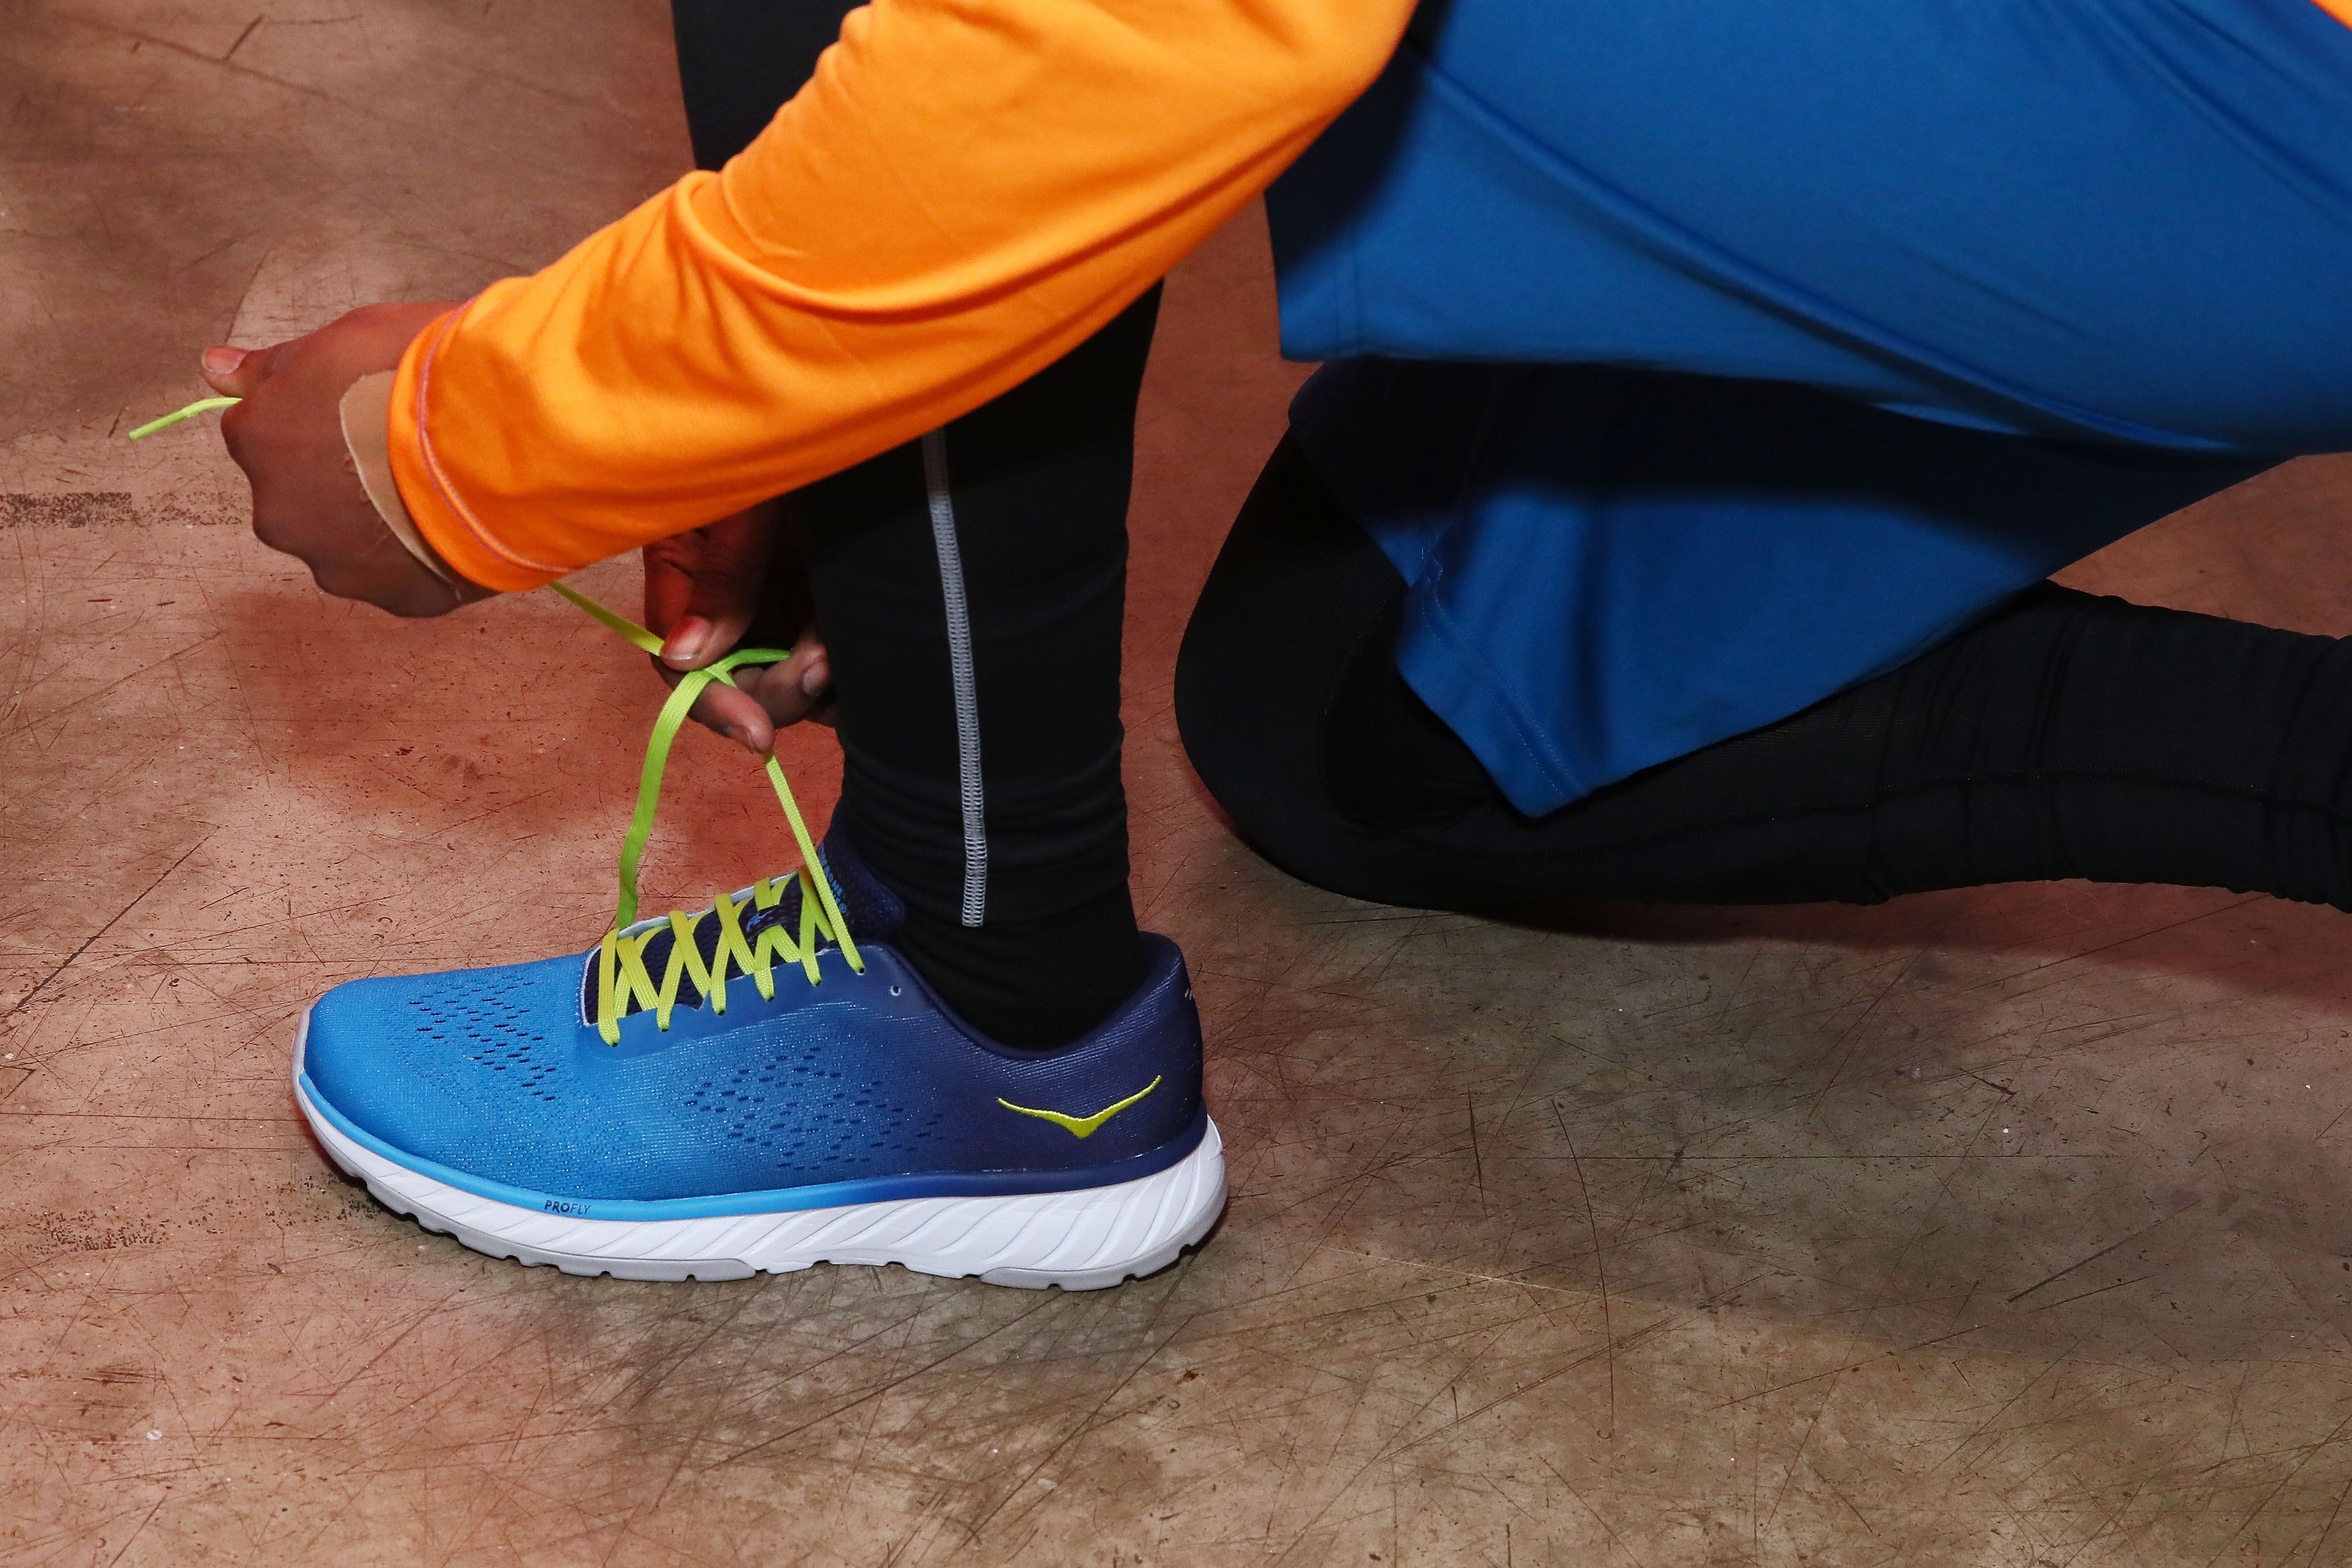 8362395111a1ca view-of-guests-shoes-during-hoka-one-ones-film-and-fitness-news -photo-1126569203-1556138128.jpg